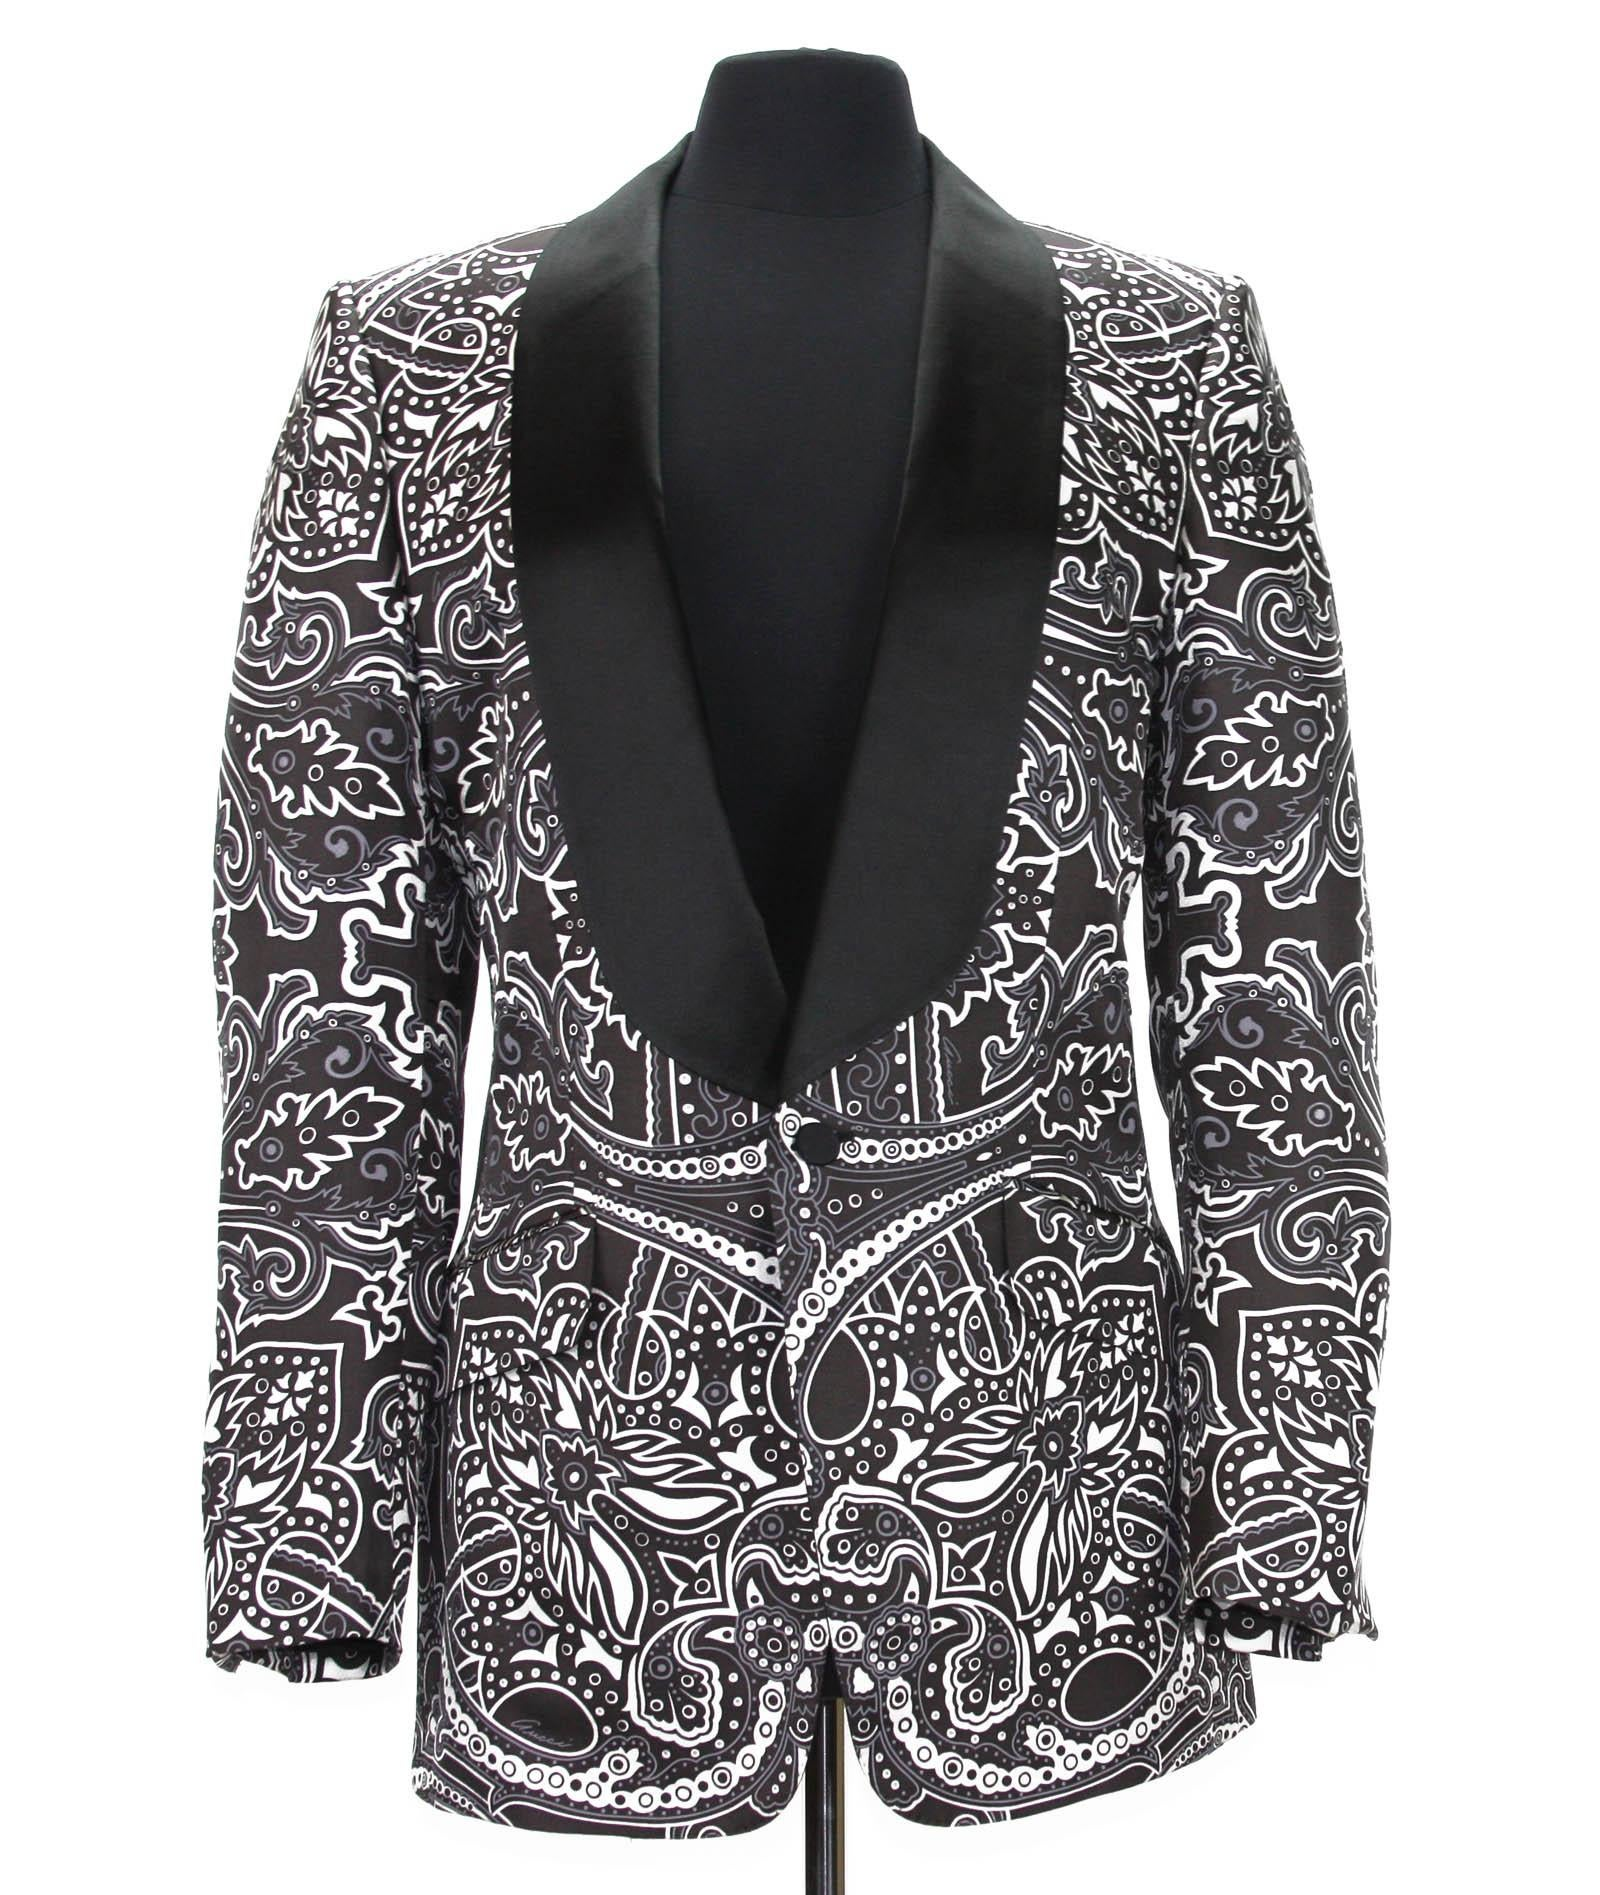 2a673aa76 New Tom Ford for Gucci Men's Silk Cocktail Blazer Spring 2004 It 52 R - US  42 R For Sale at 1stdibs